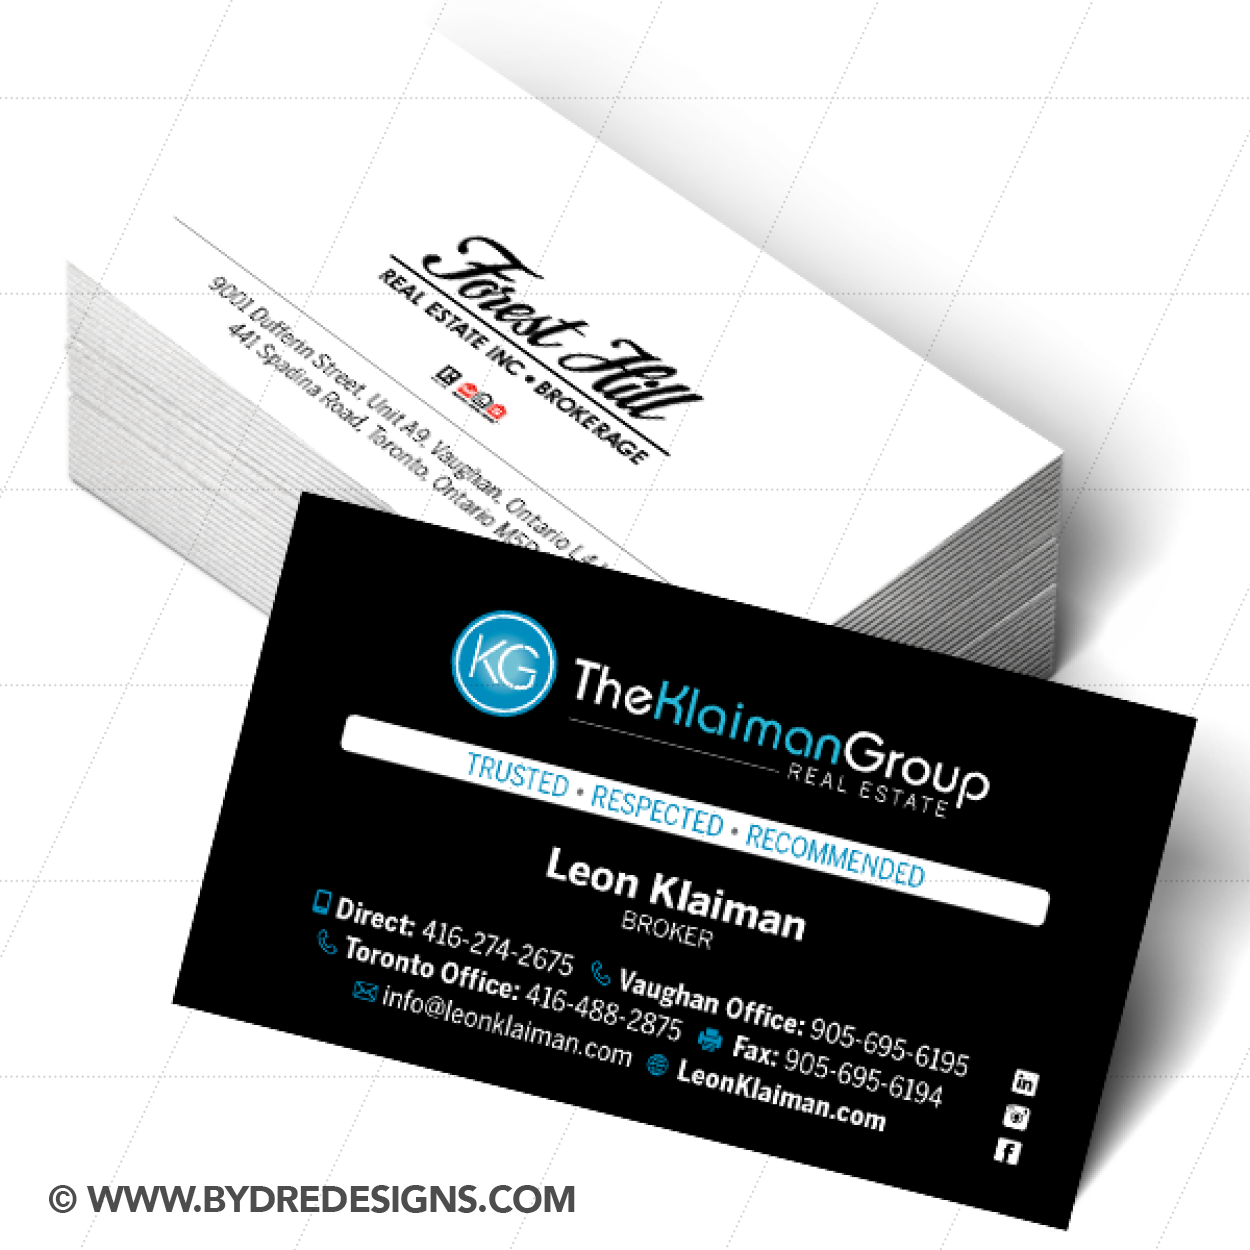 Business Card Design Brand Development For Leon Klaiman At The Group Forest Hill